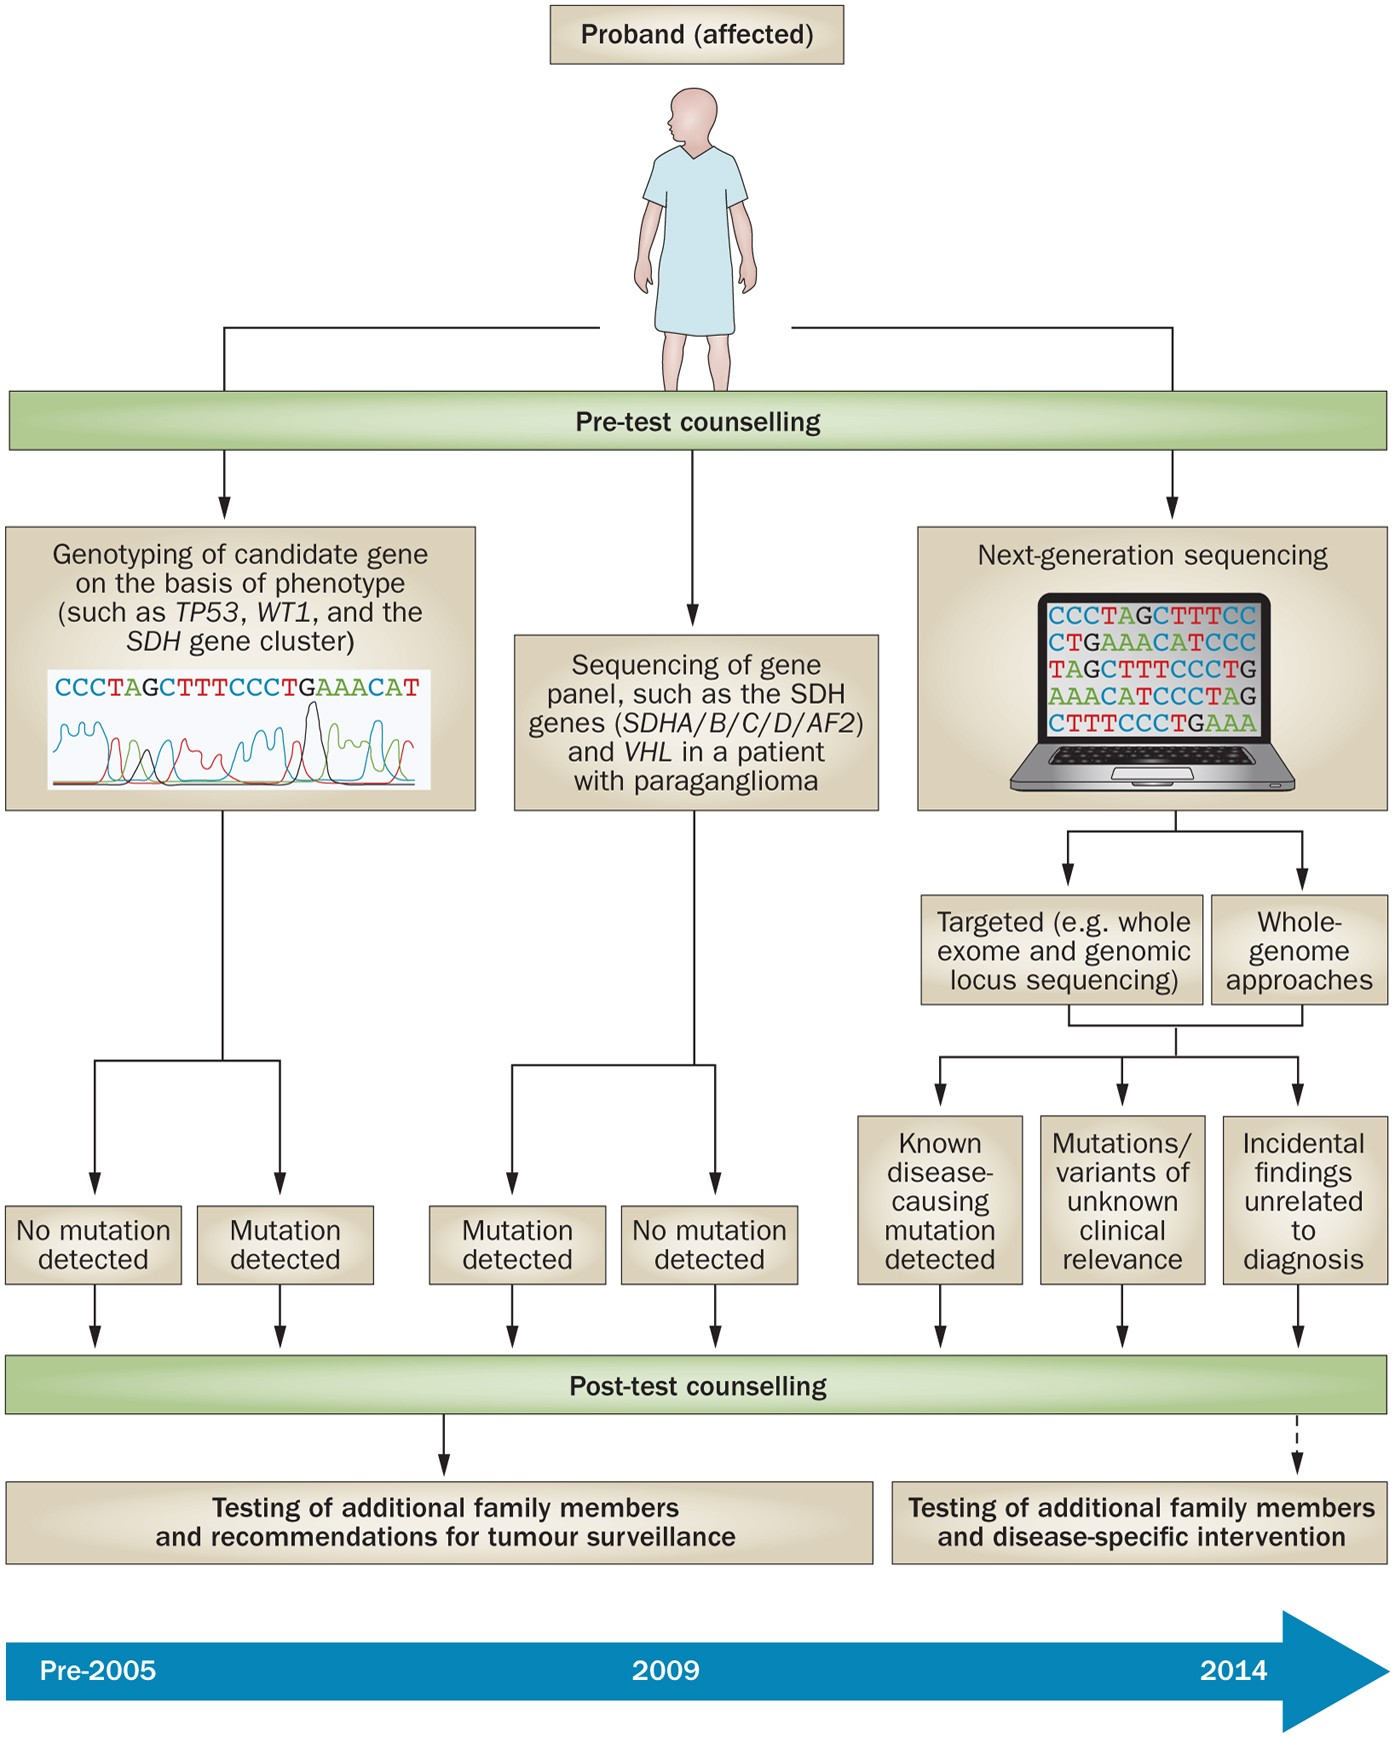 familial cancer linkage analysis)